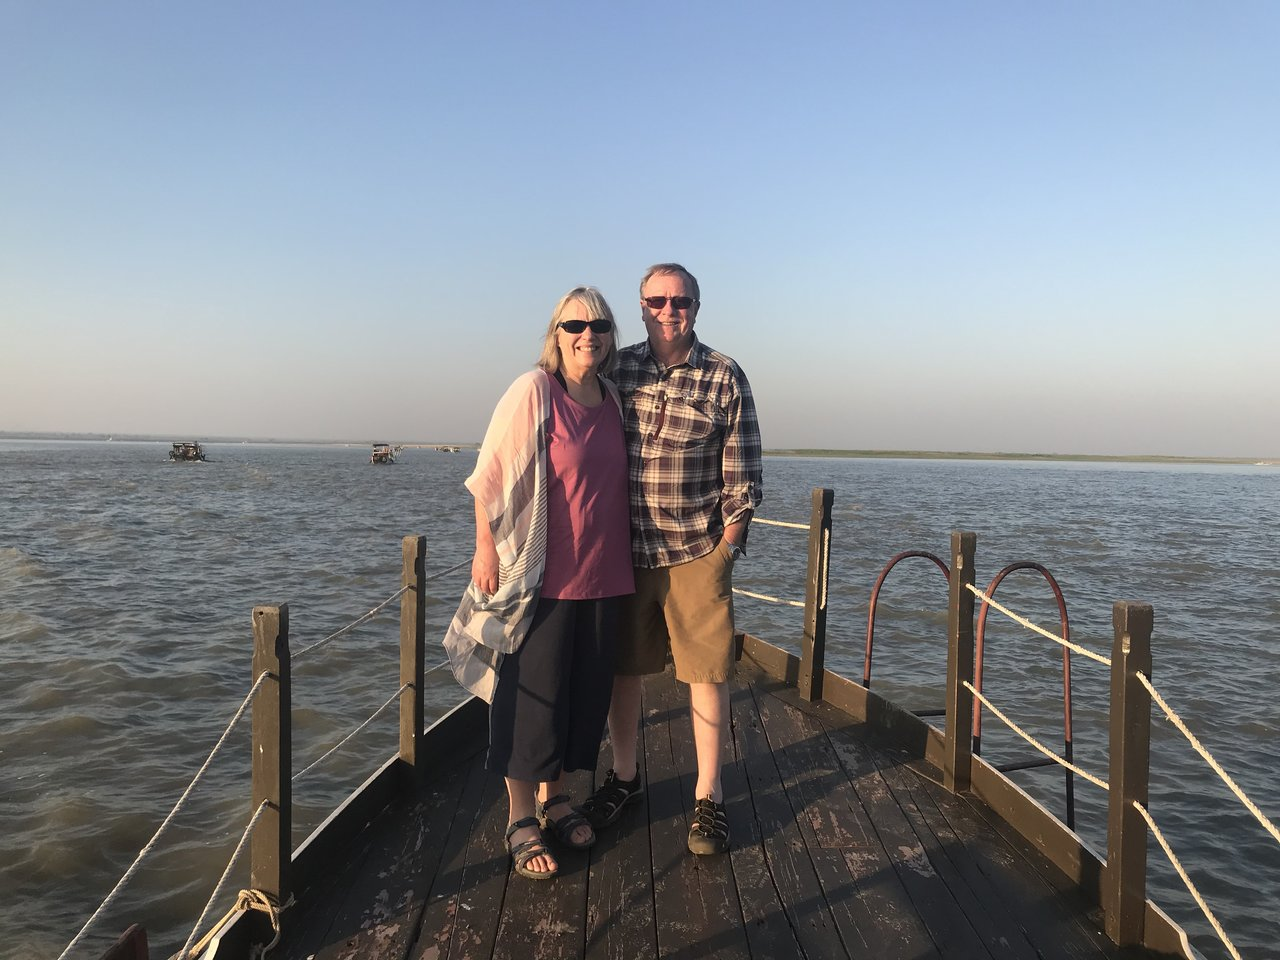 Cruising the Irrawaddy River at sunset | Photo taken by Bonnie S